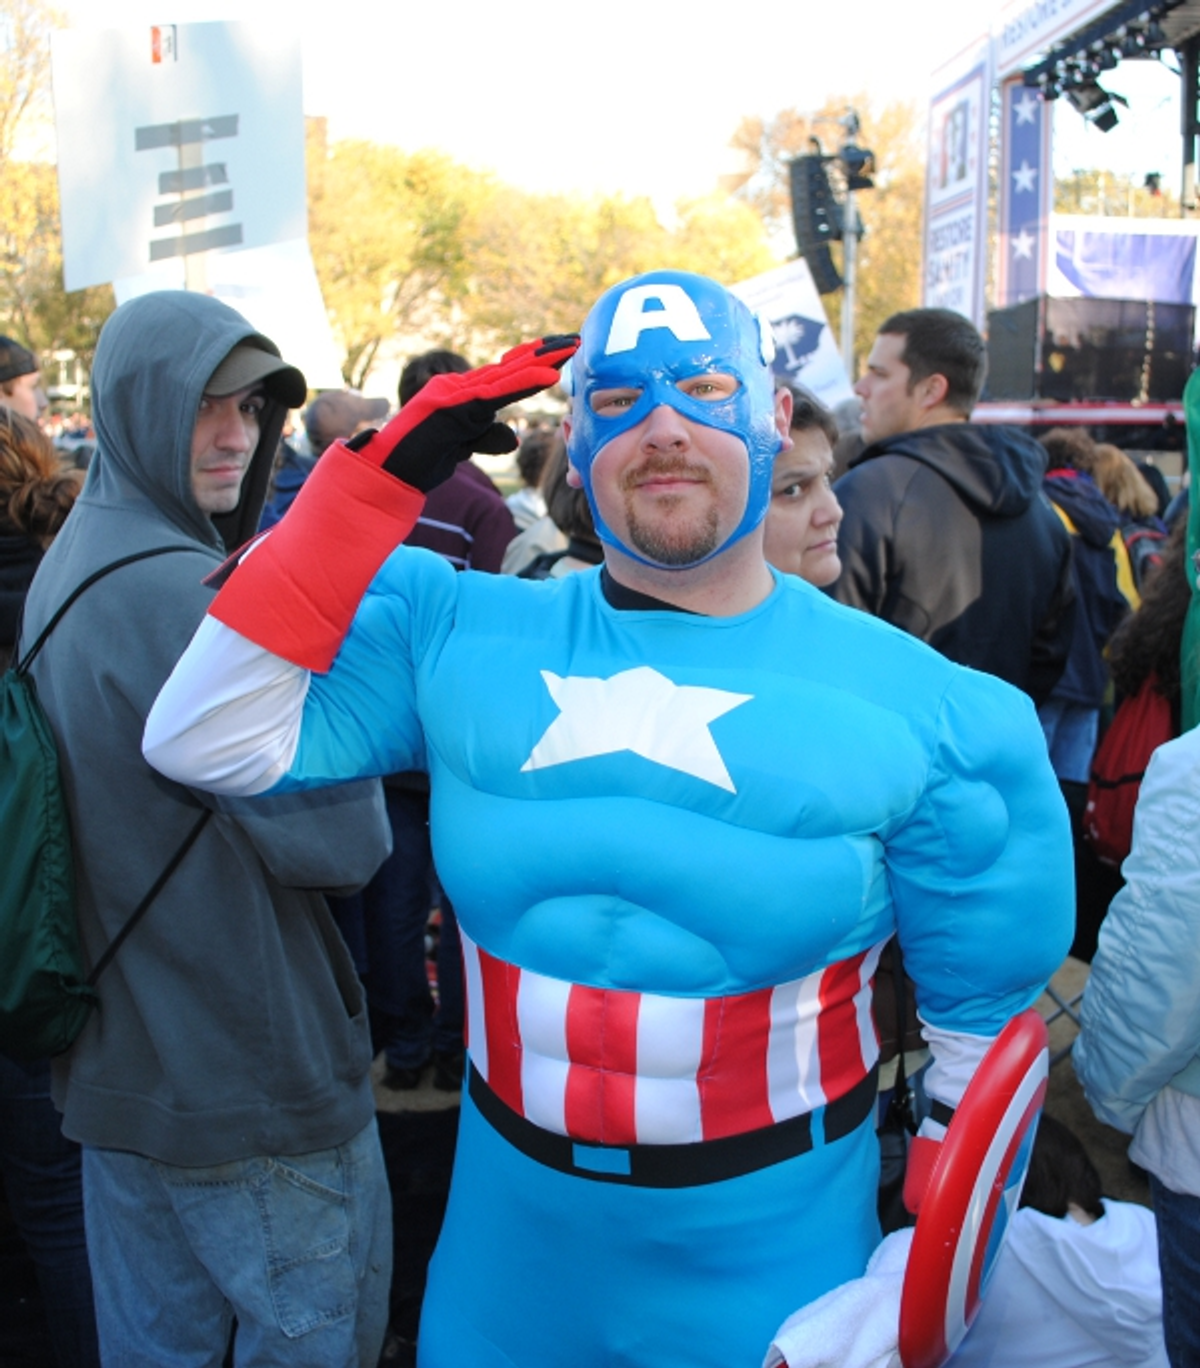 Captain America salutes reasonableness at the Rally to Restore Sanity in Washington, D.C. on October 30, 2010